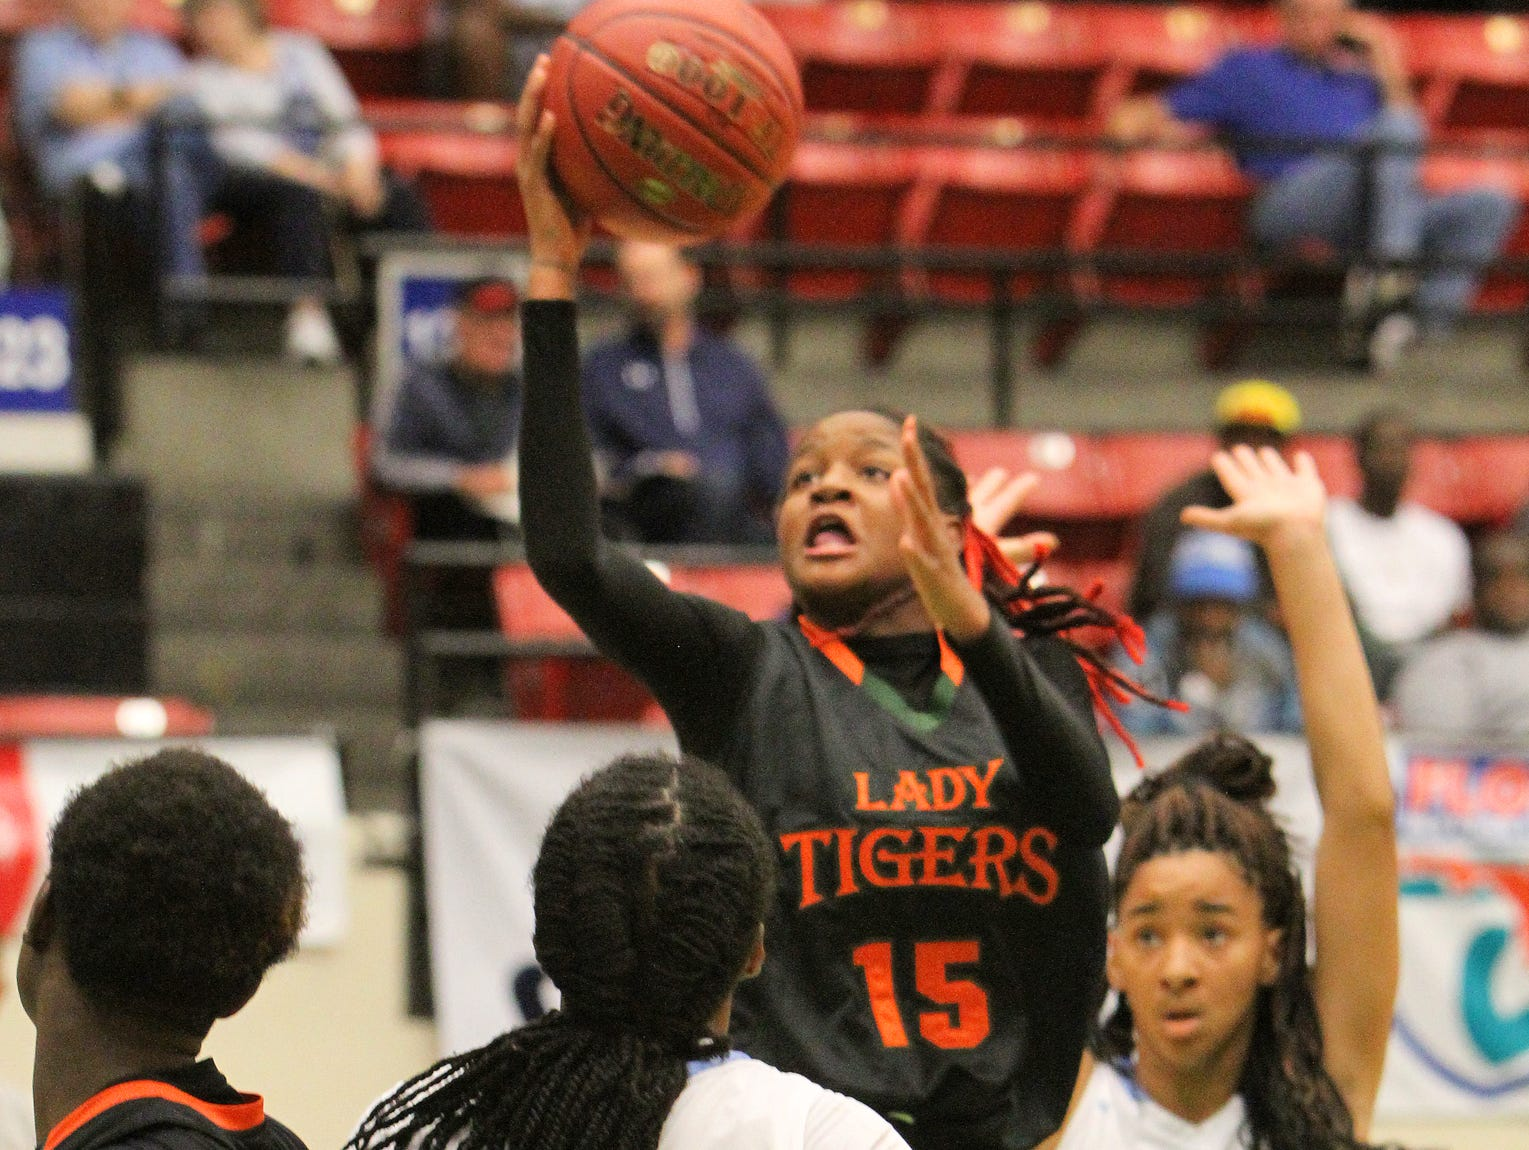 Dunbar's Dekeriva Patterson goes up for a basket as the Ribault defense closes in during the FHSAA Girls 5A Basketball semi finals Thursday February 18, 2016 in Lakeland, Florida. Dunbar lost the match 51-44.